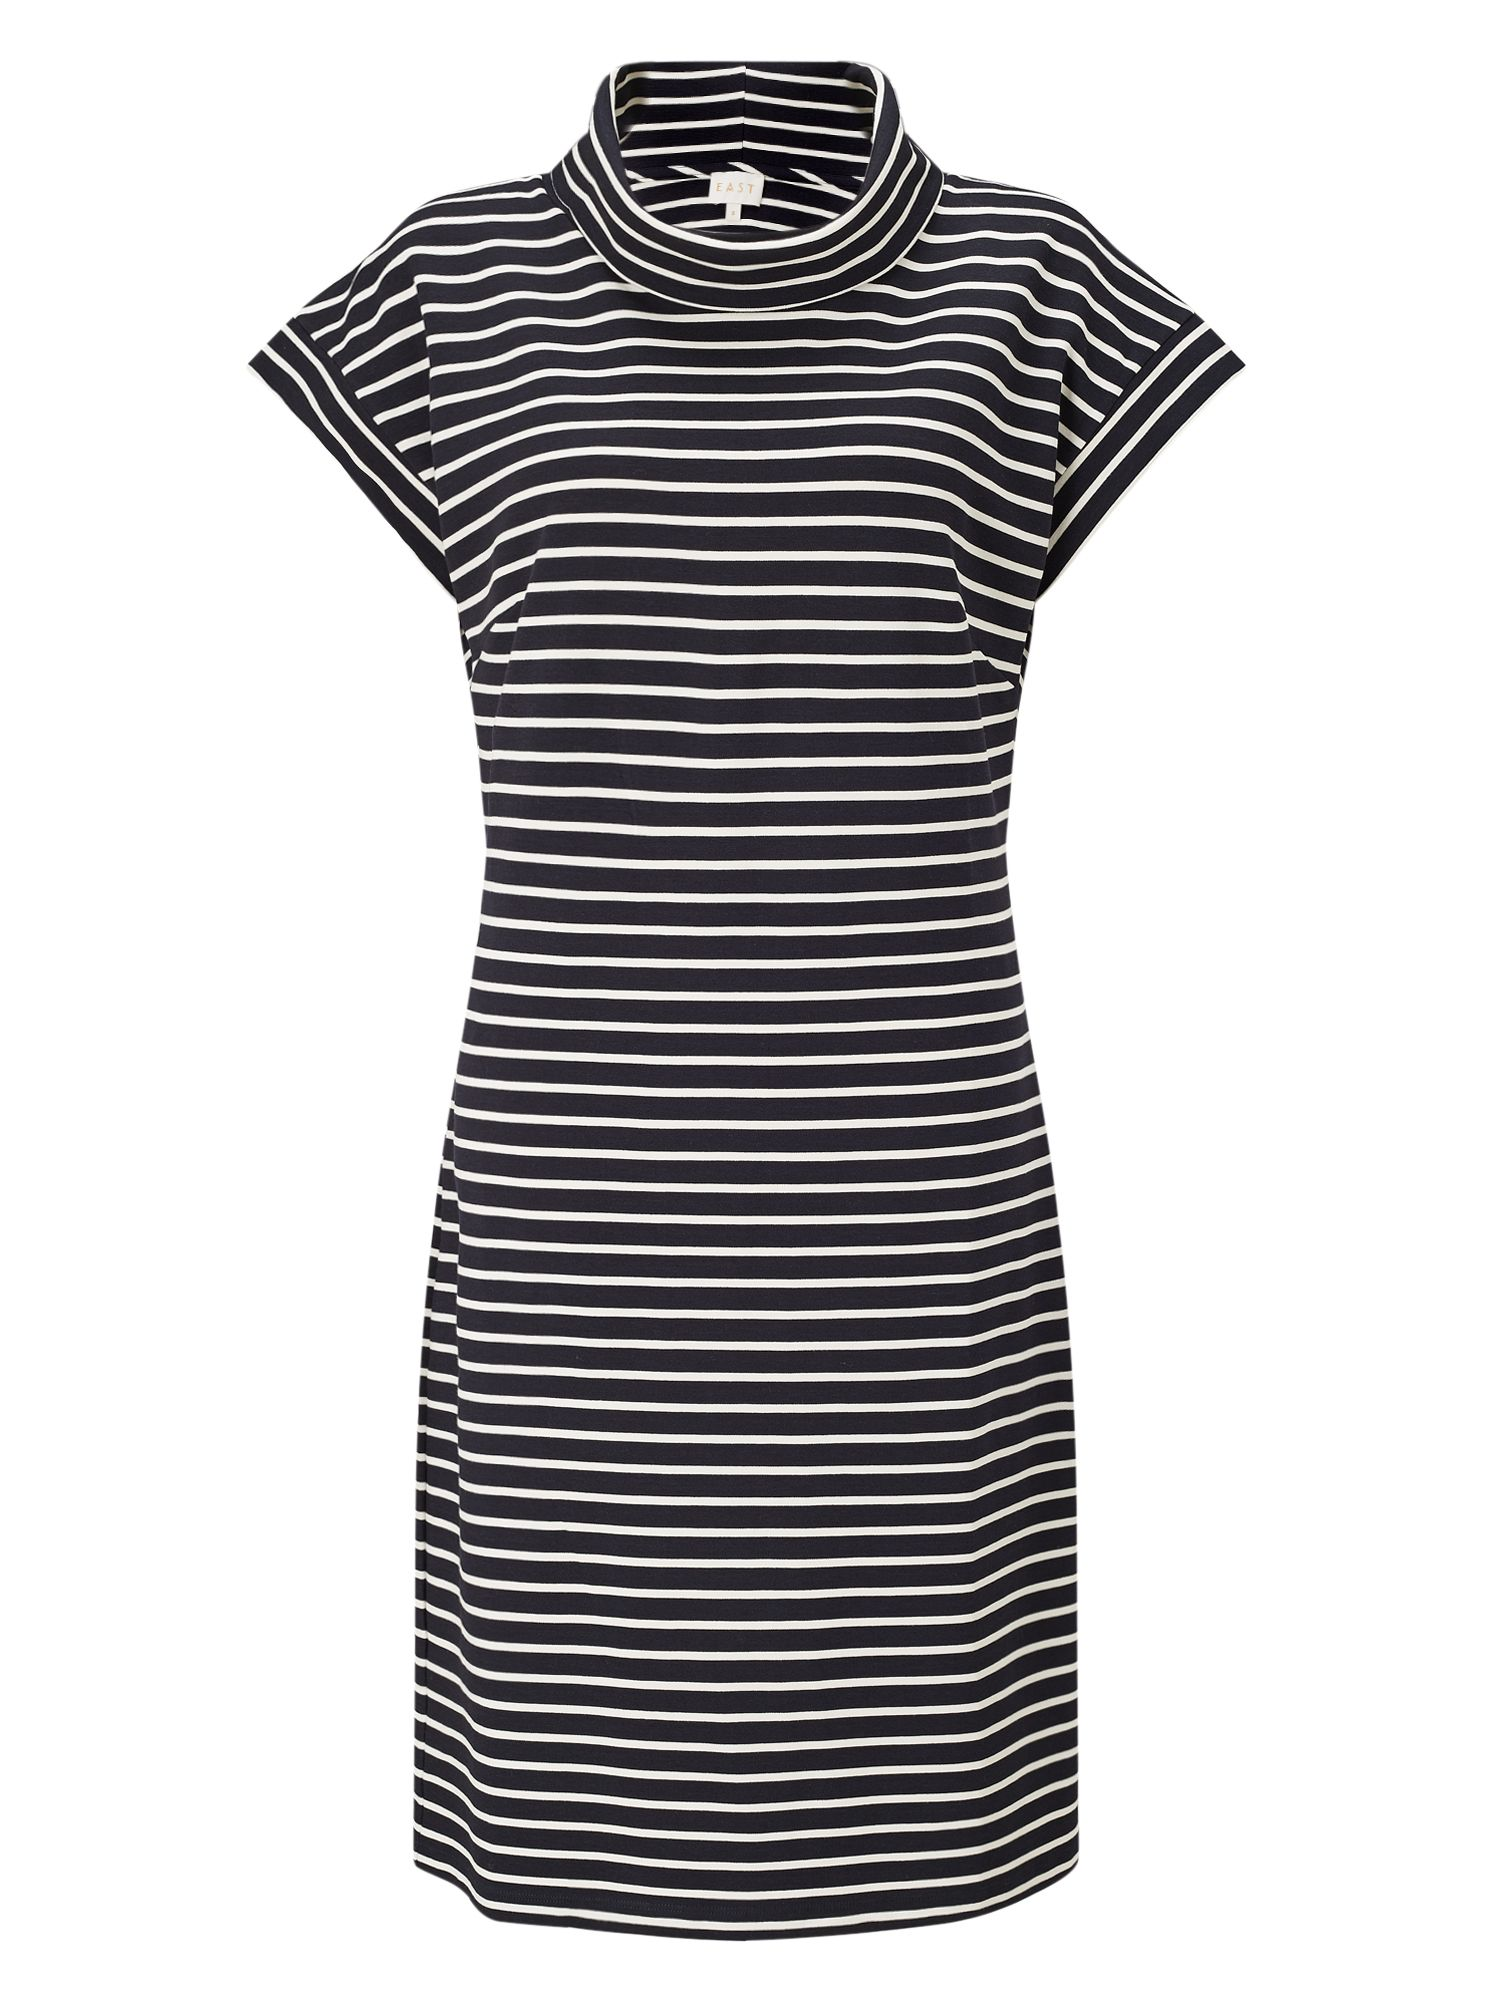 East Bardot Stripe Jersey Dress, Blue